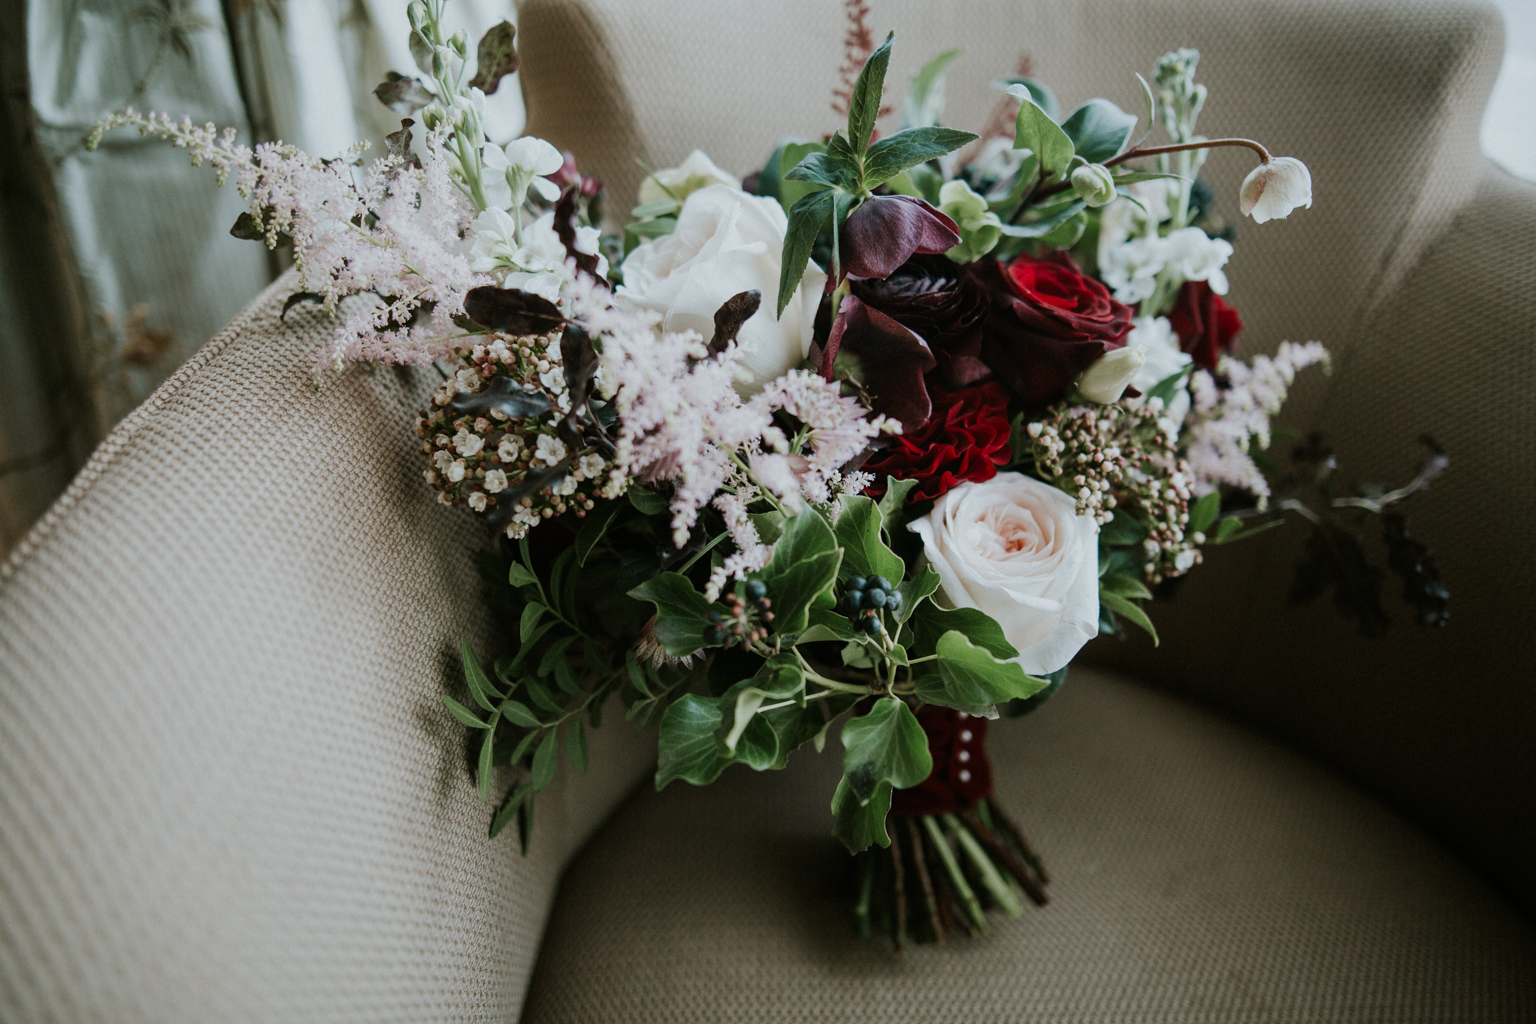 Gorgeous wedding blooms by Floral Menagerie